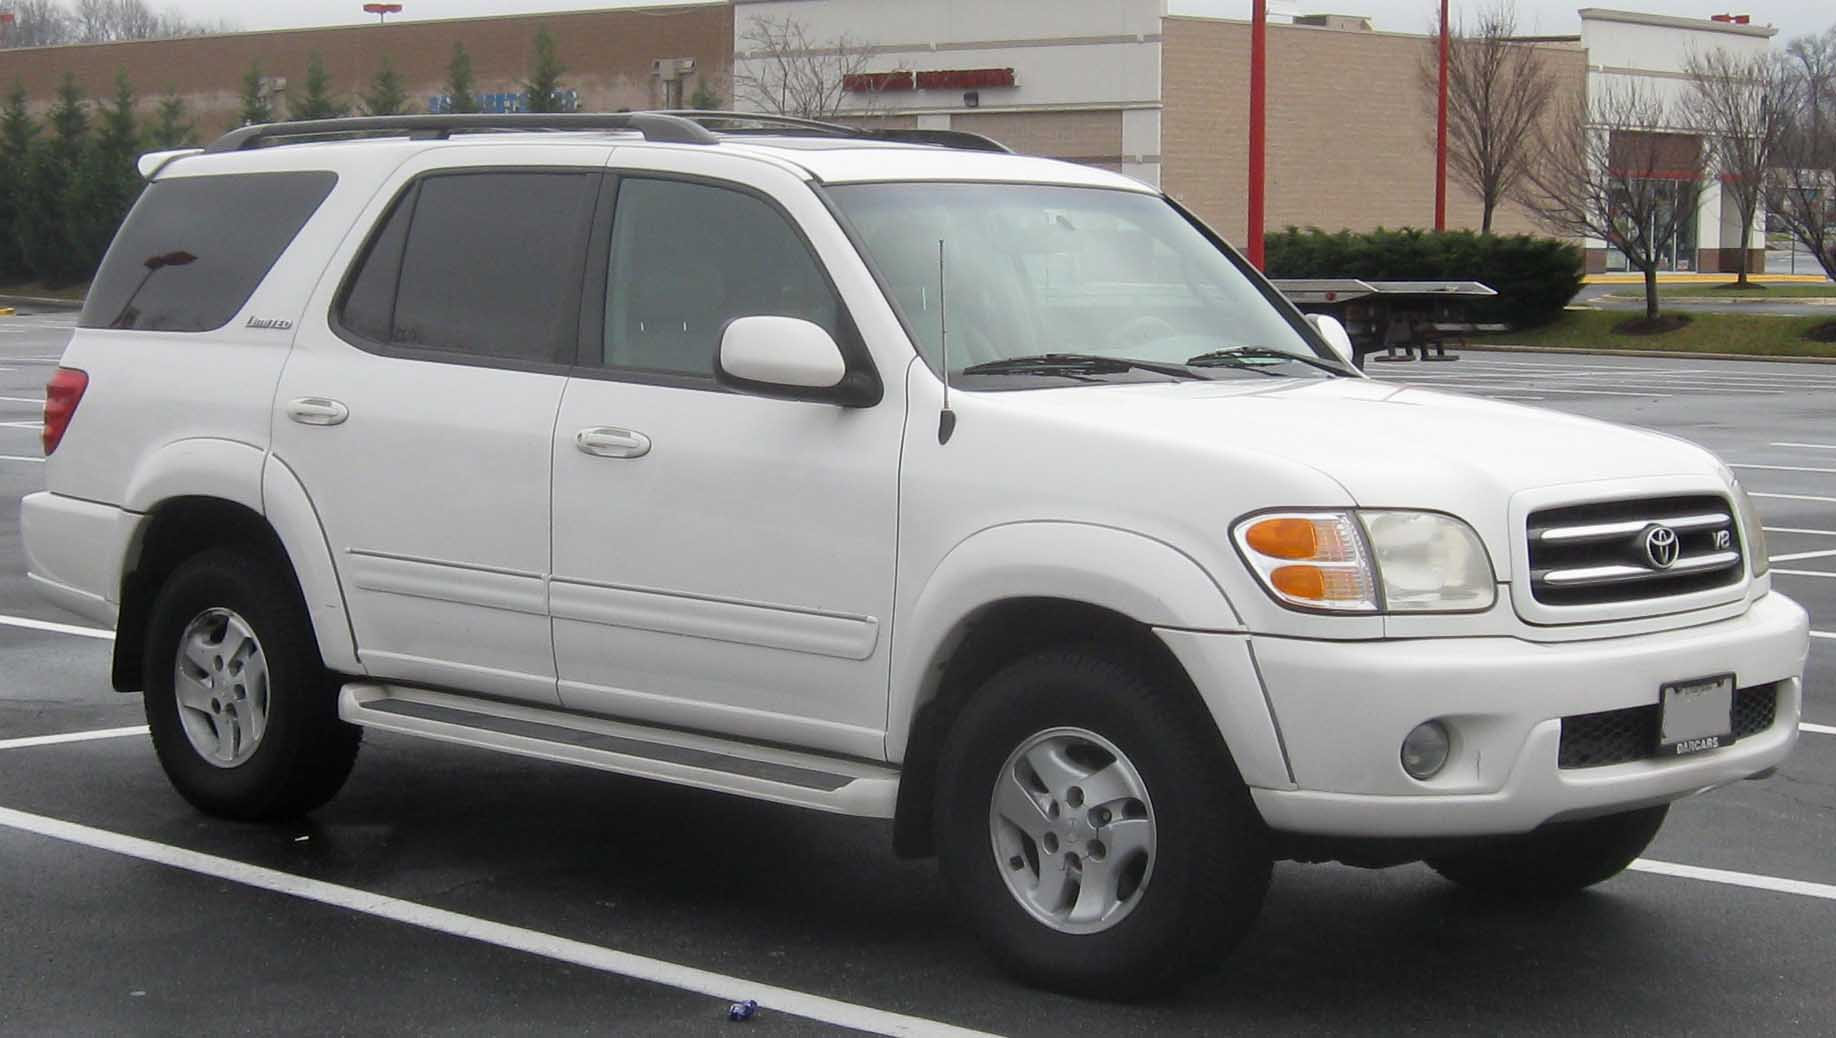 File:01-04 Toyota Sequoia Limited.jpg - Wikimedia Commons